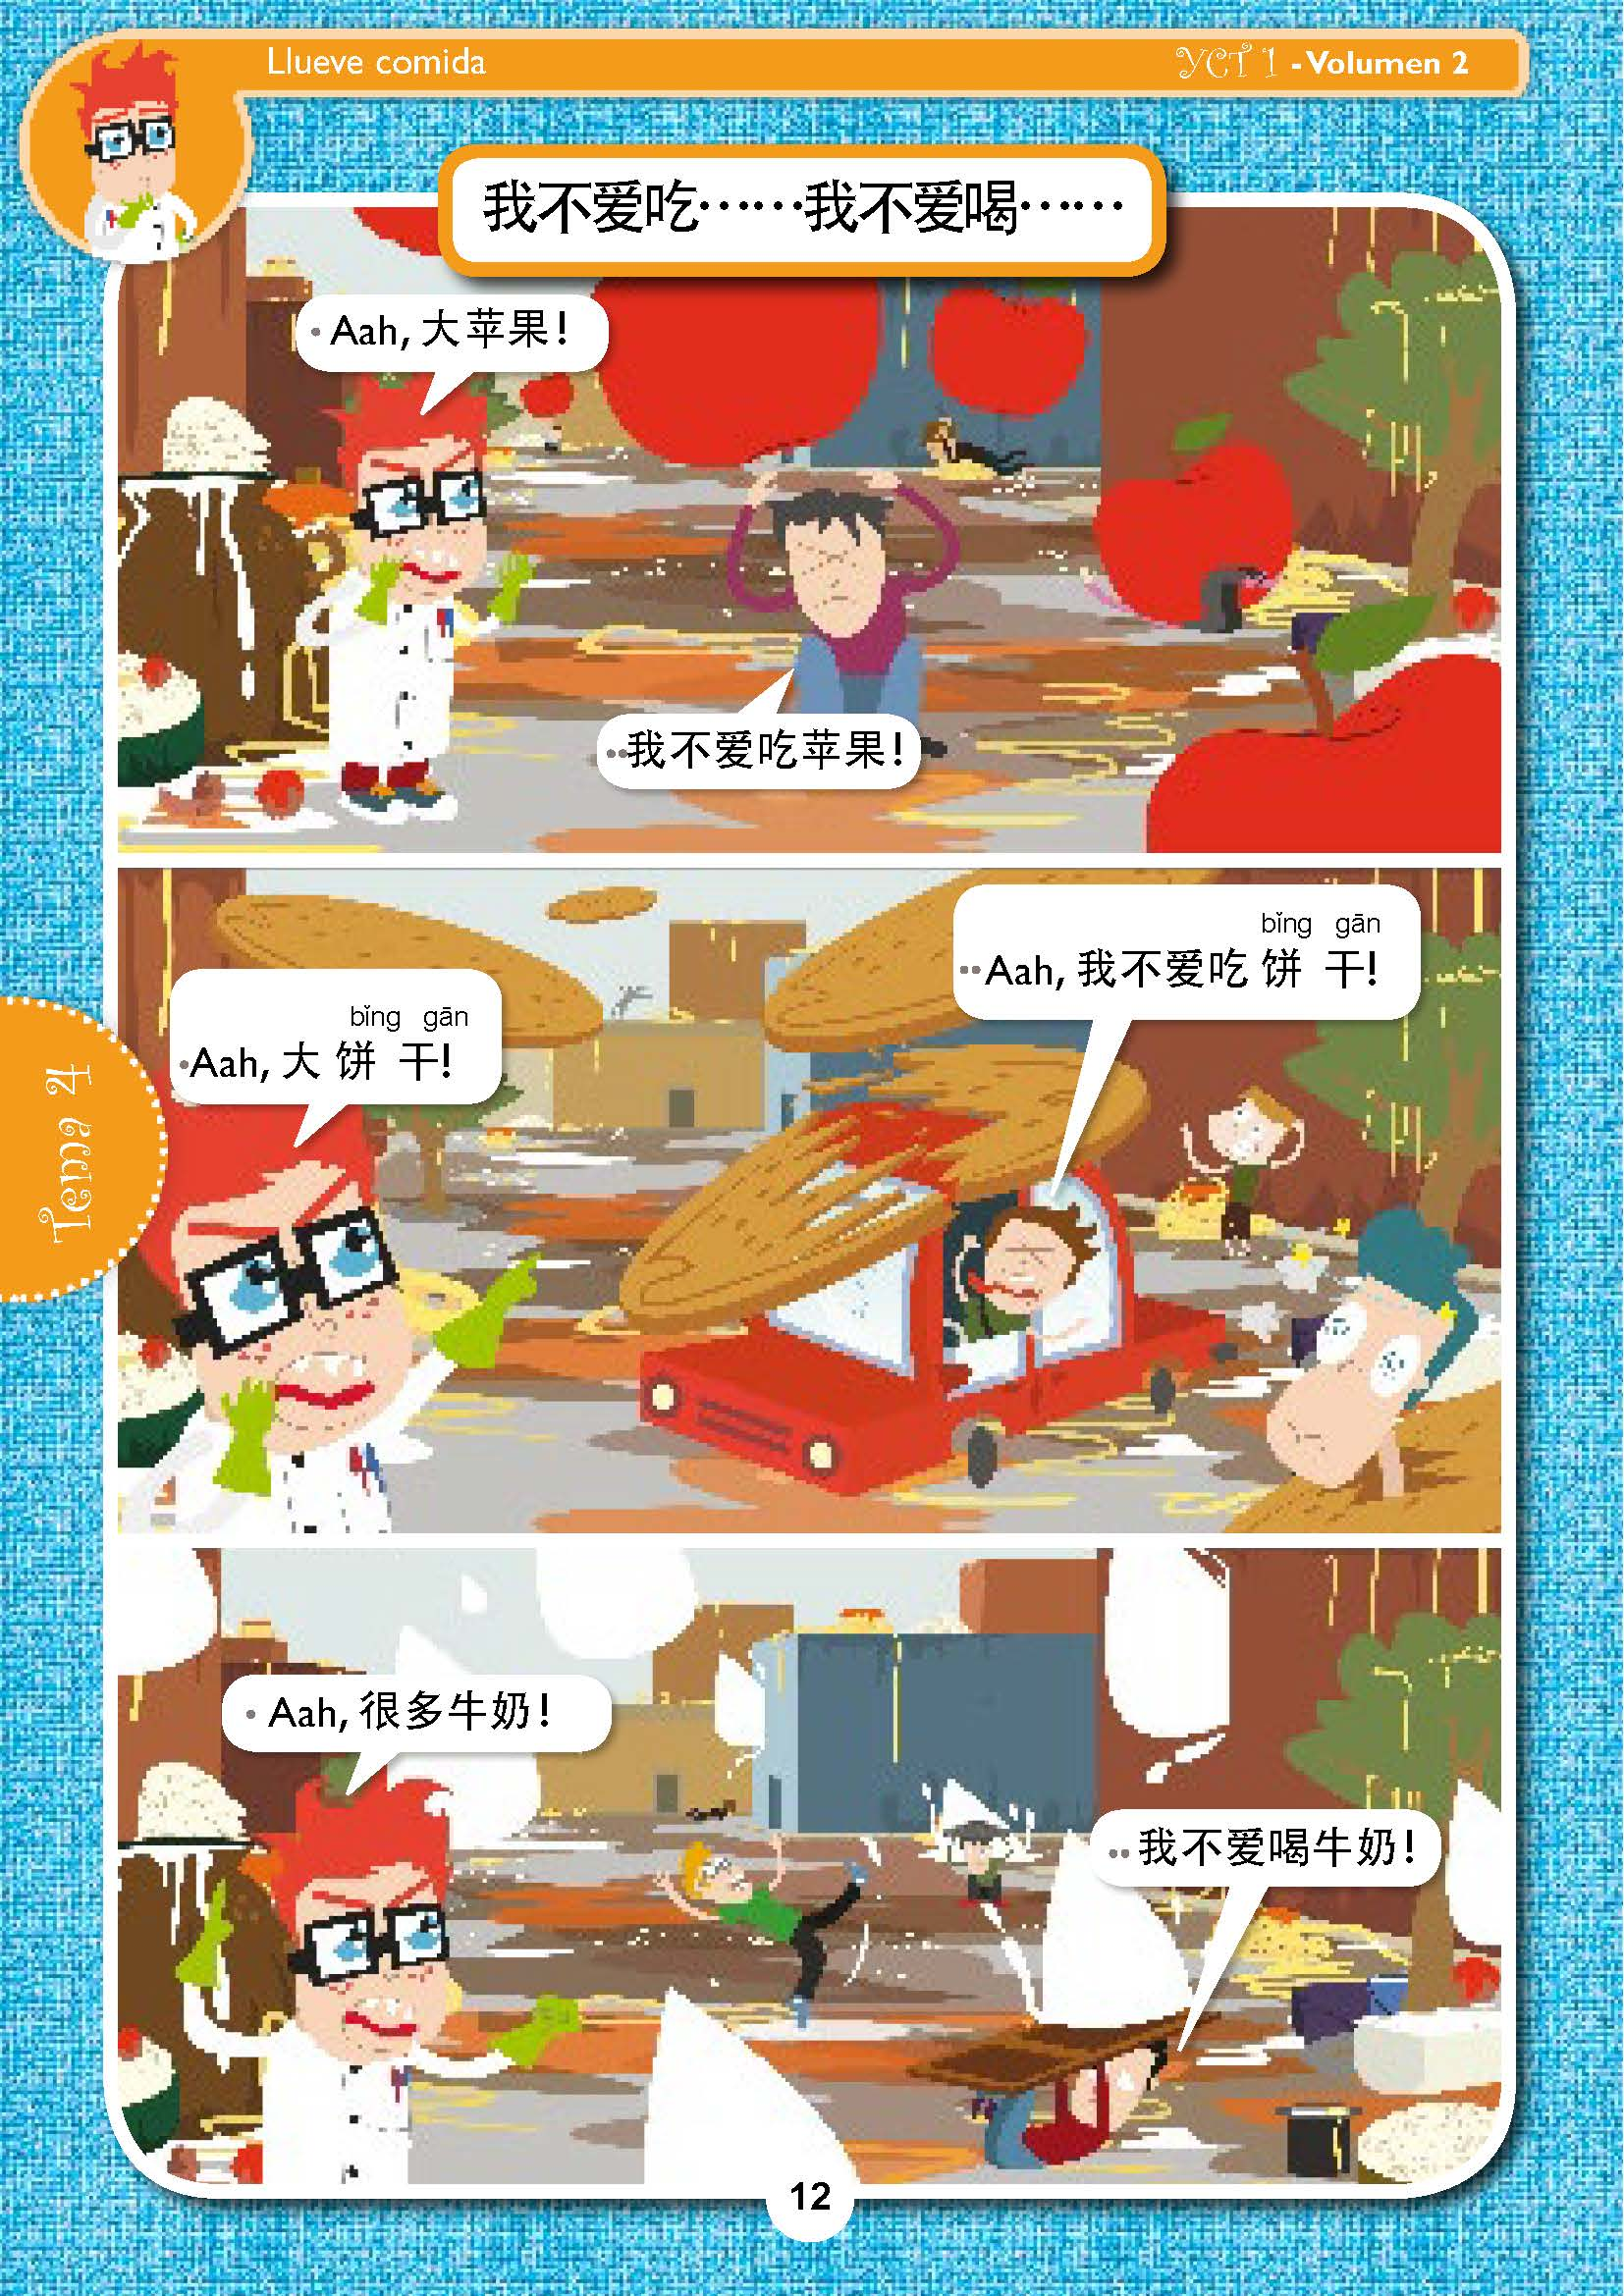 Chinese-Story__YCT1 Vol_2_Page_12